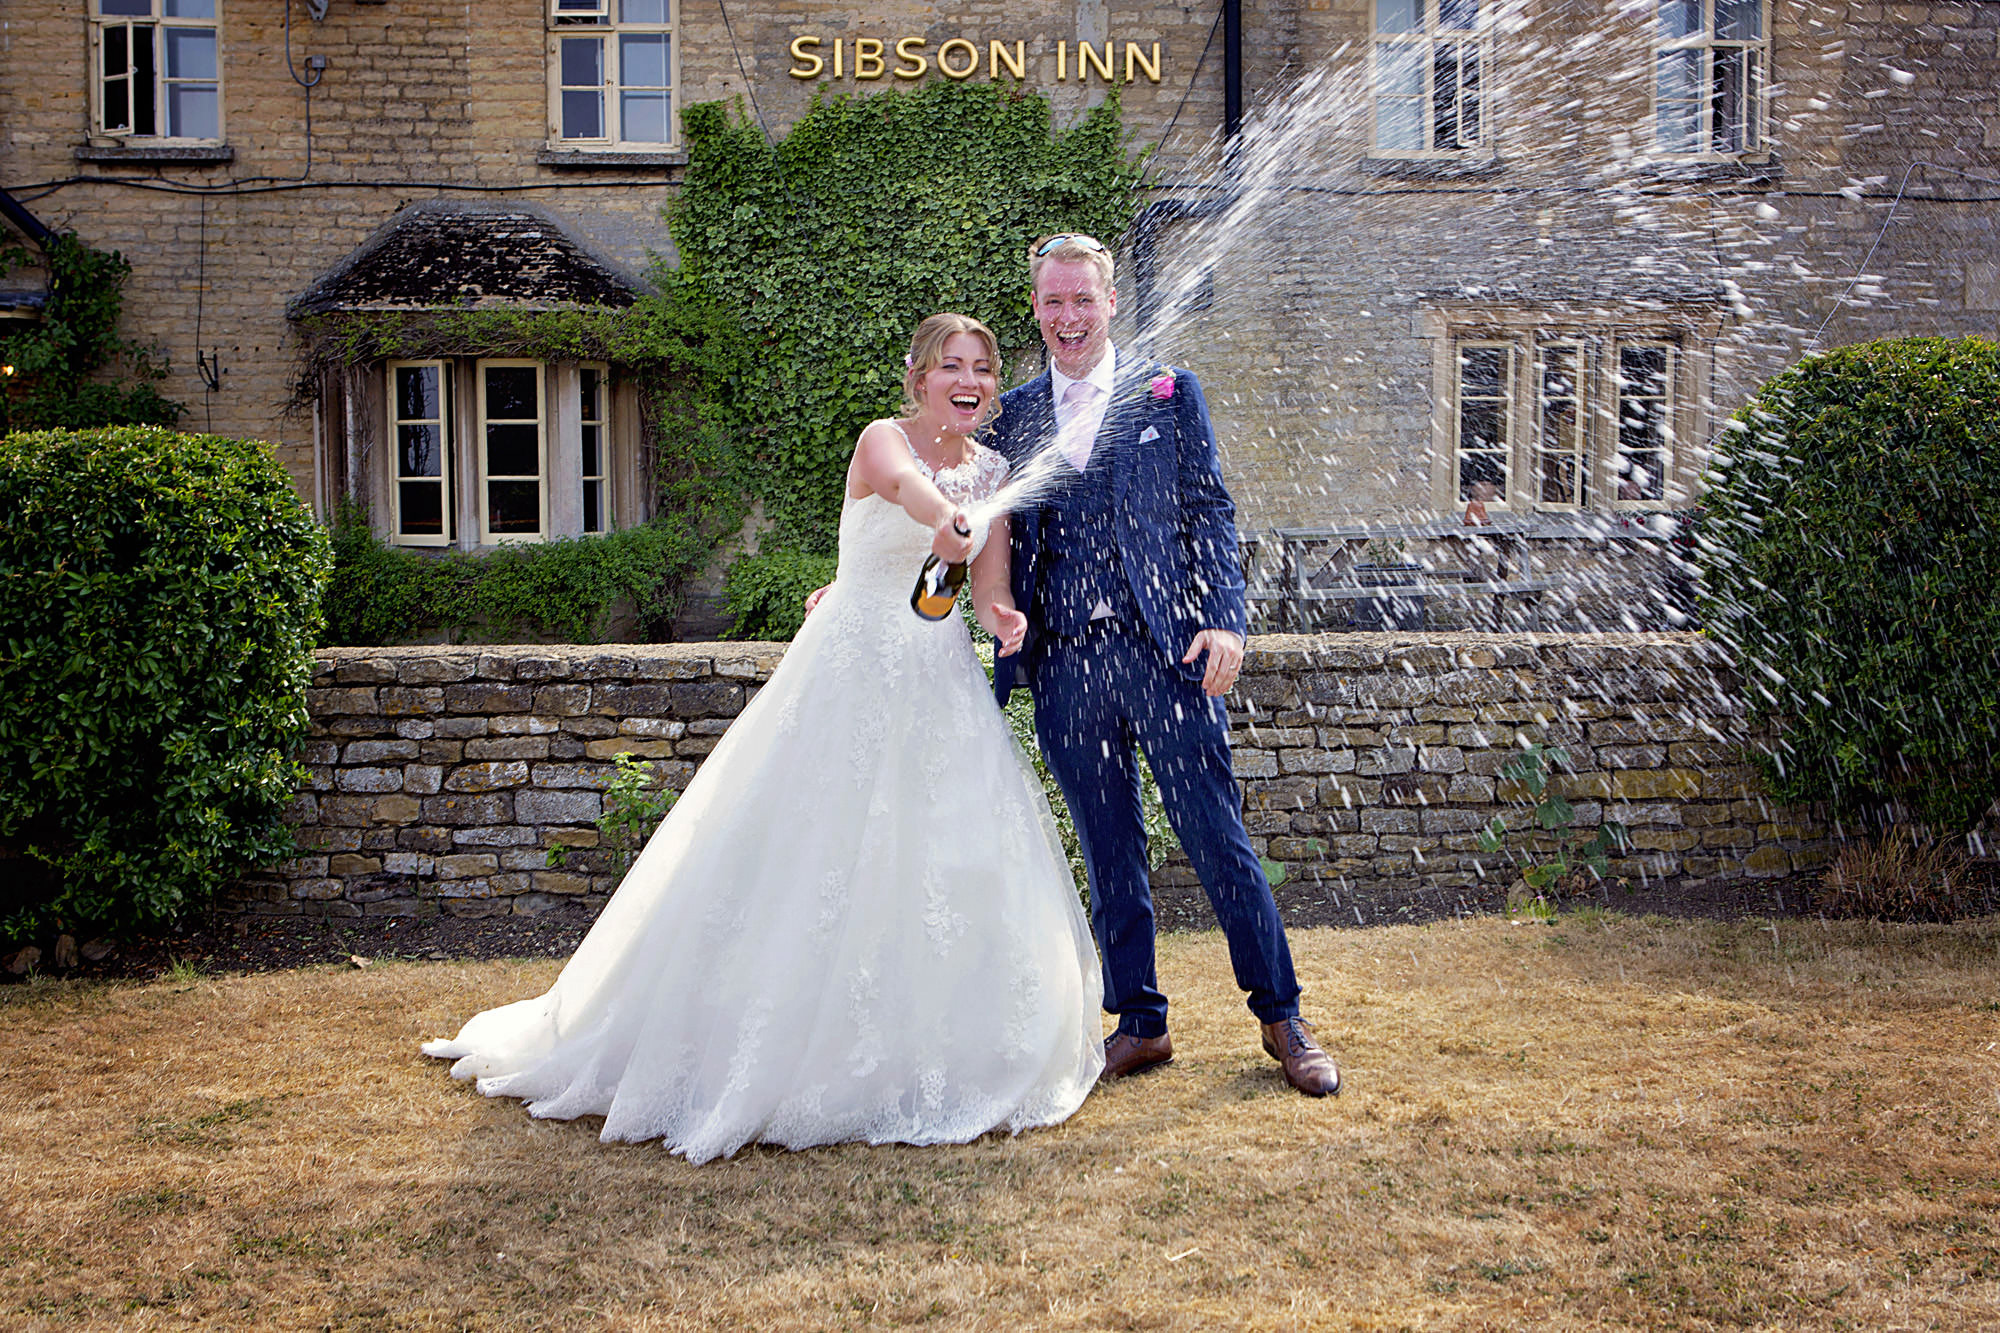 wedding-sibson-inn (31).jpg